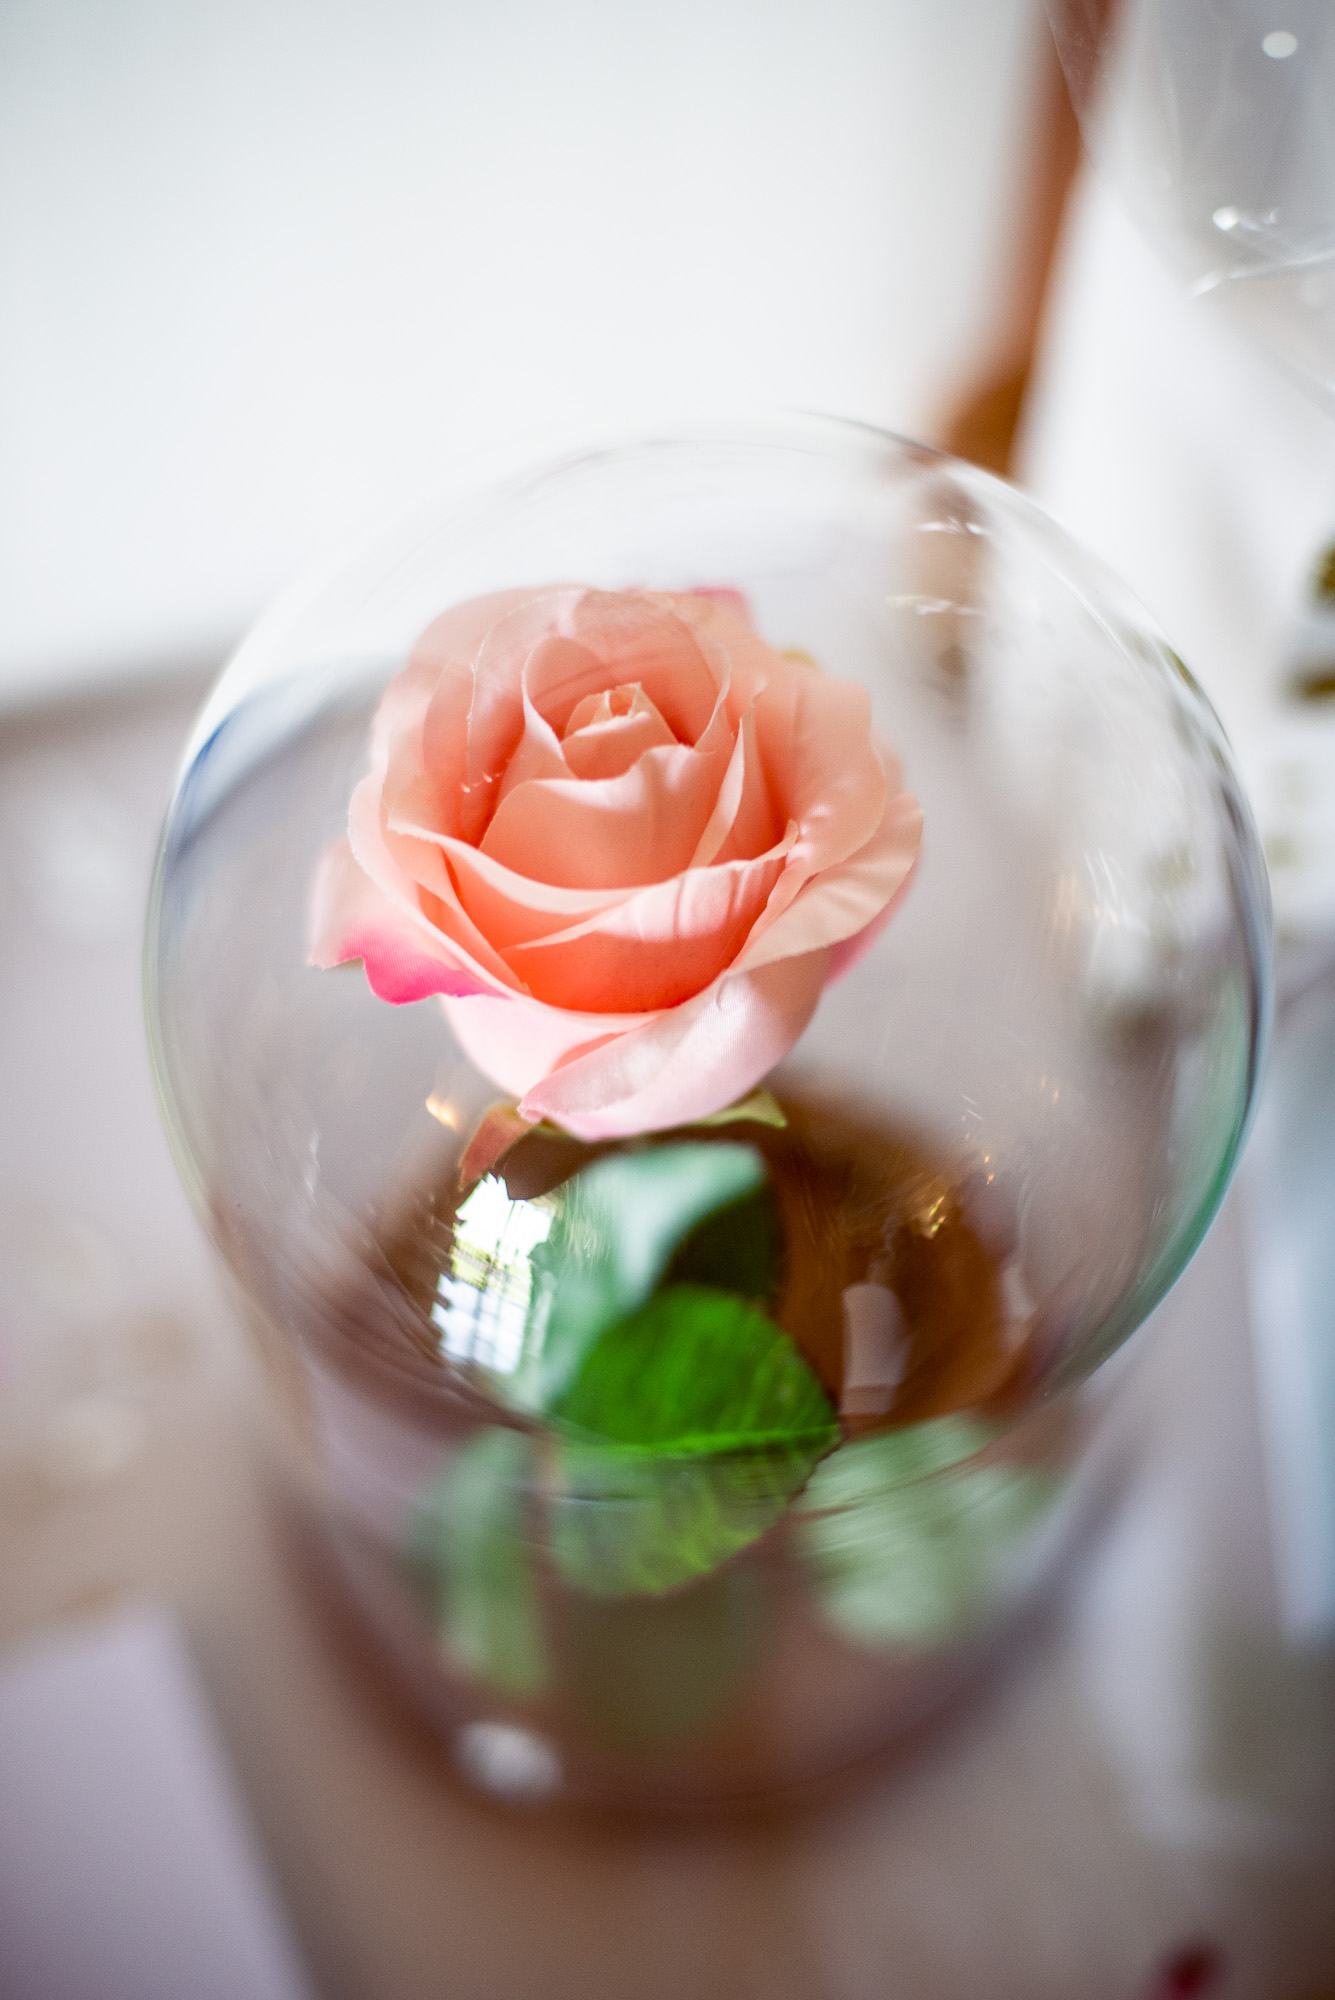 They had this rose in a glass dome bell jar just like the one from Beauty & the Beast which Carley loves. -